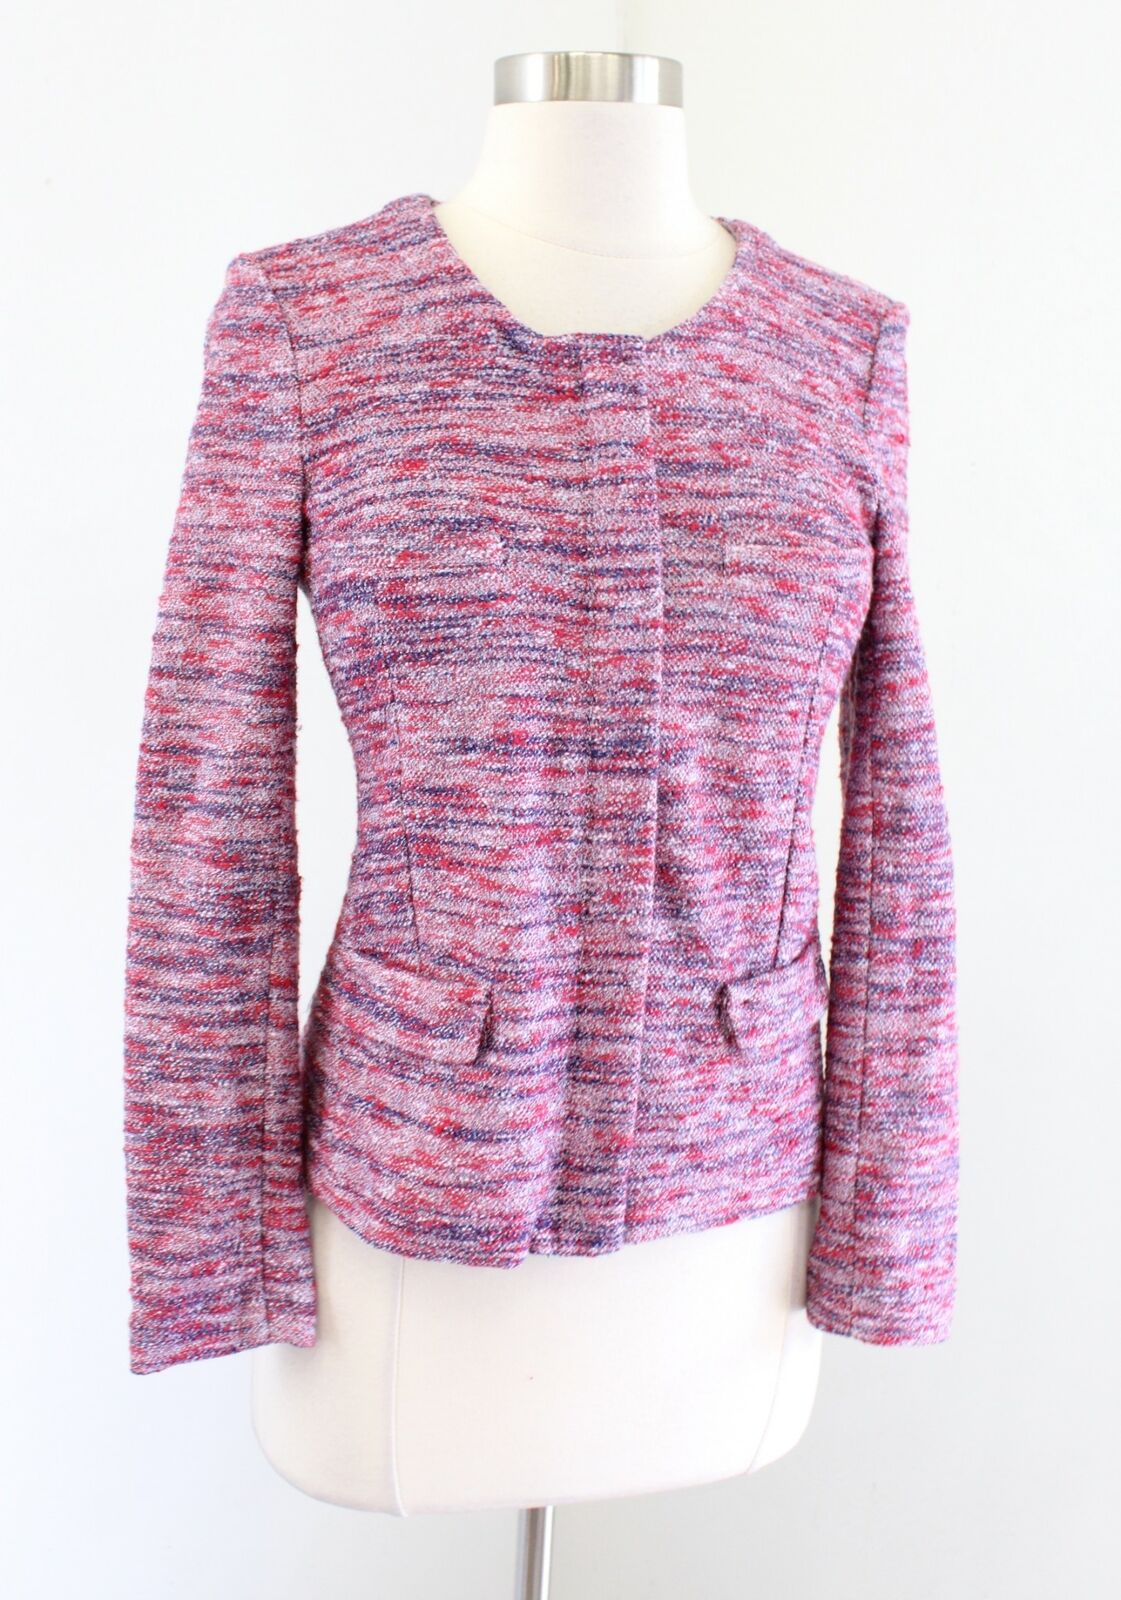 J Crew Micro Tweed Sweater Jacket in Poppy Size XS Zip Front Knit Pink Red Blue